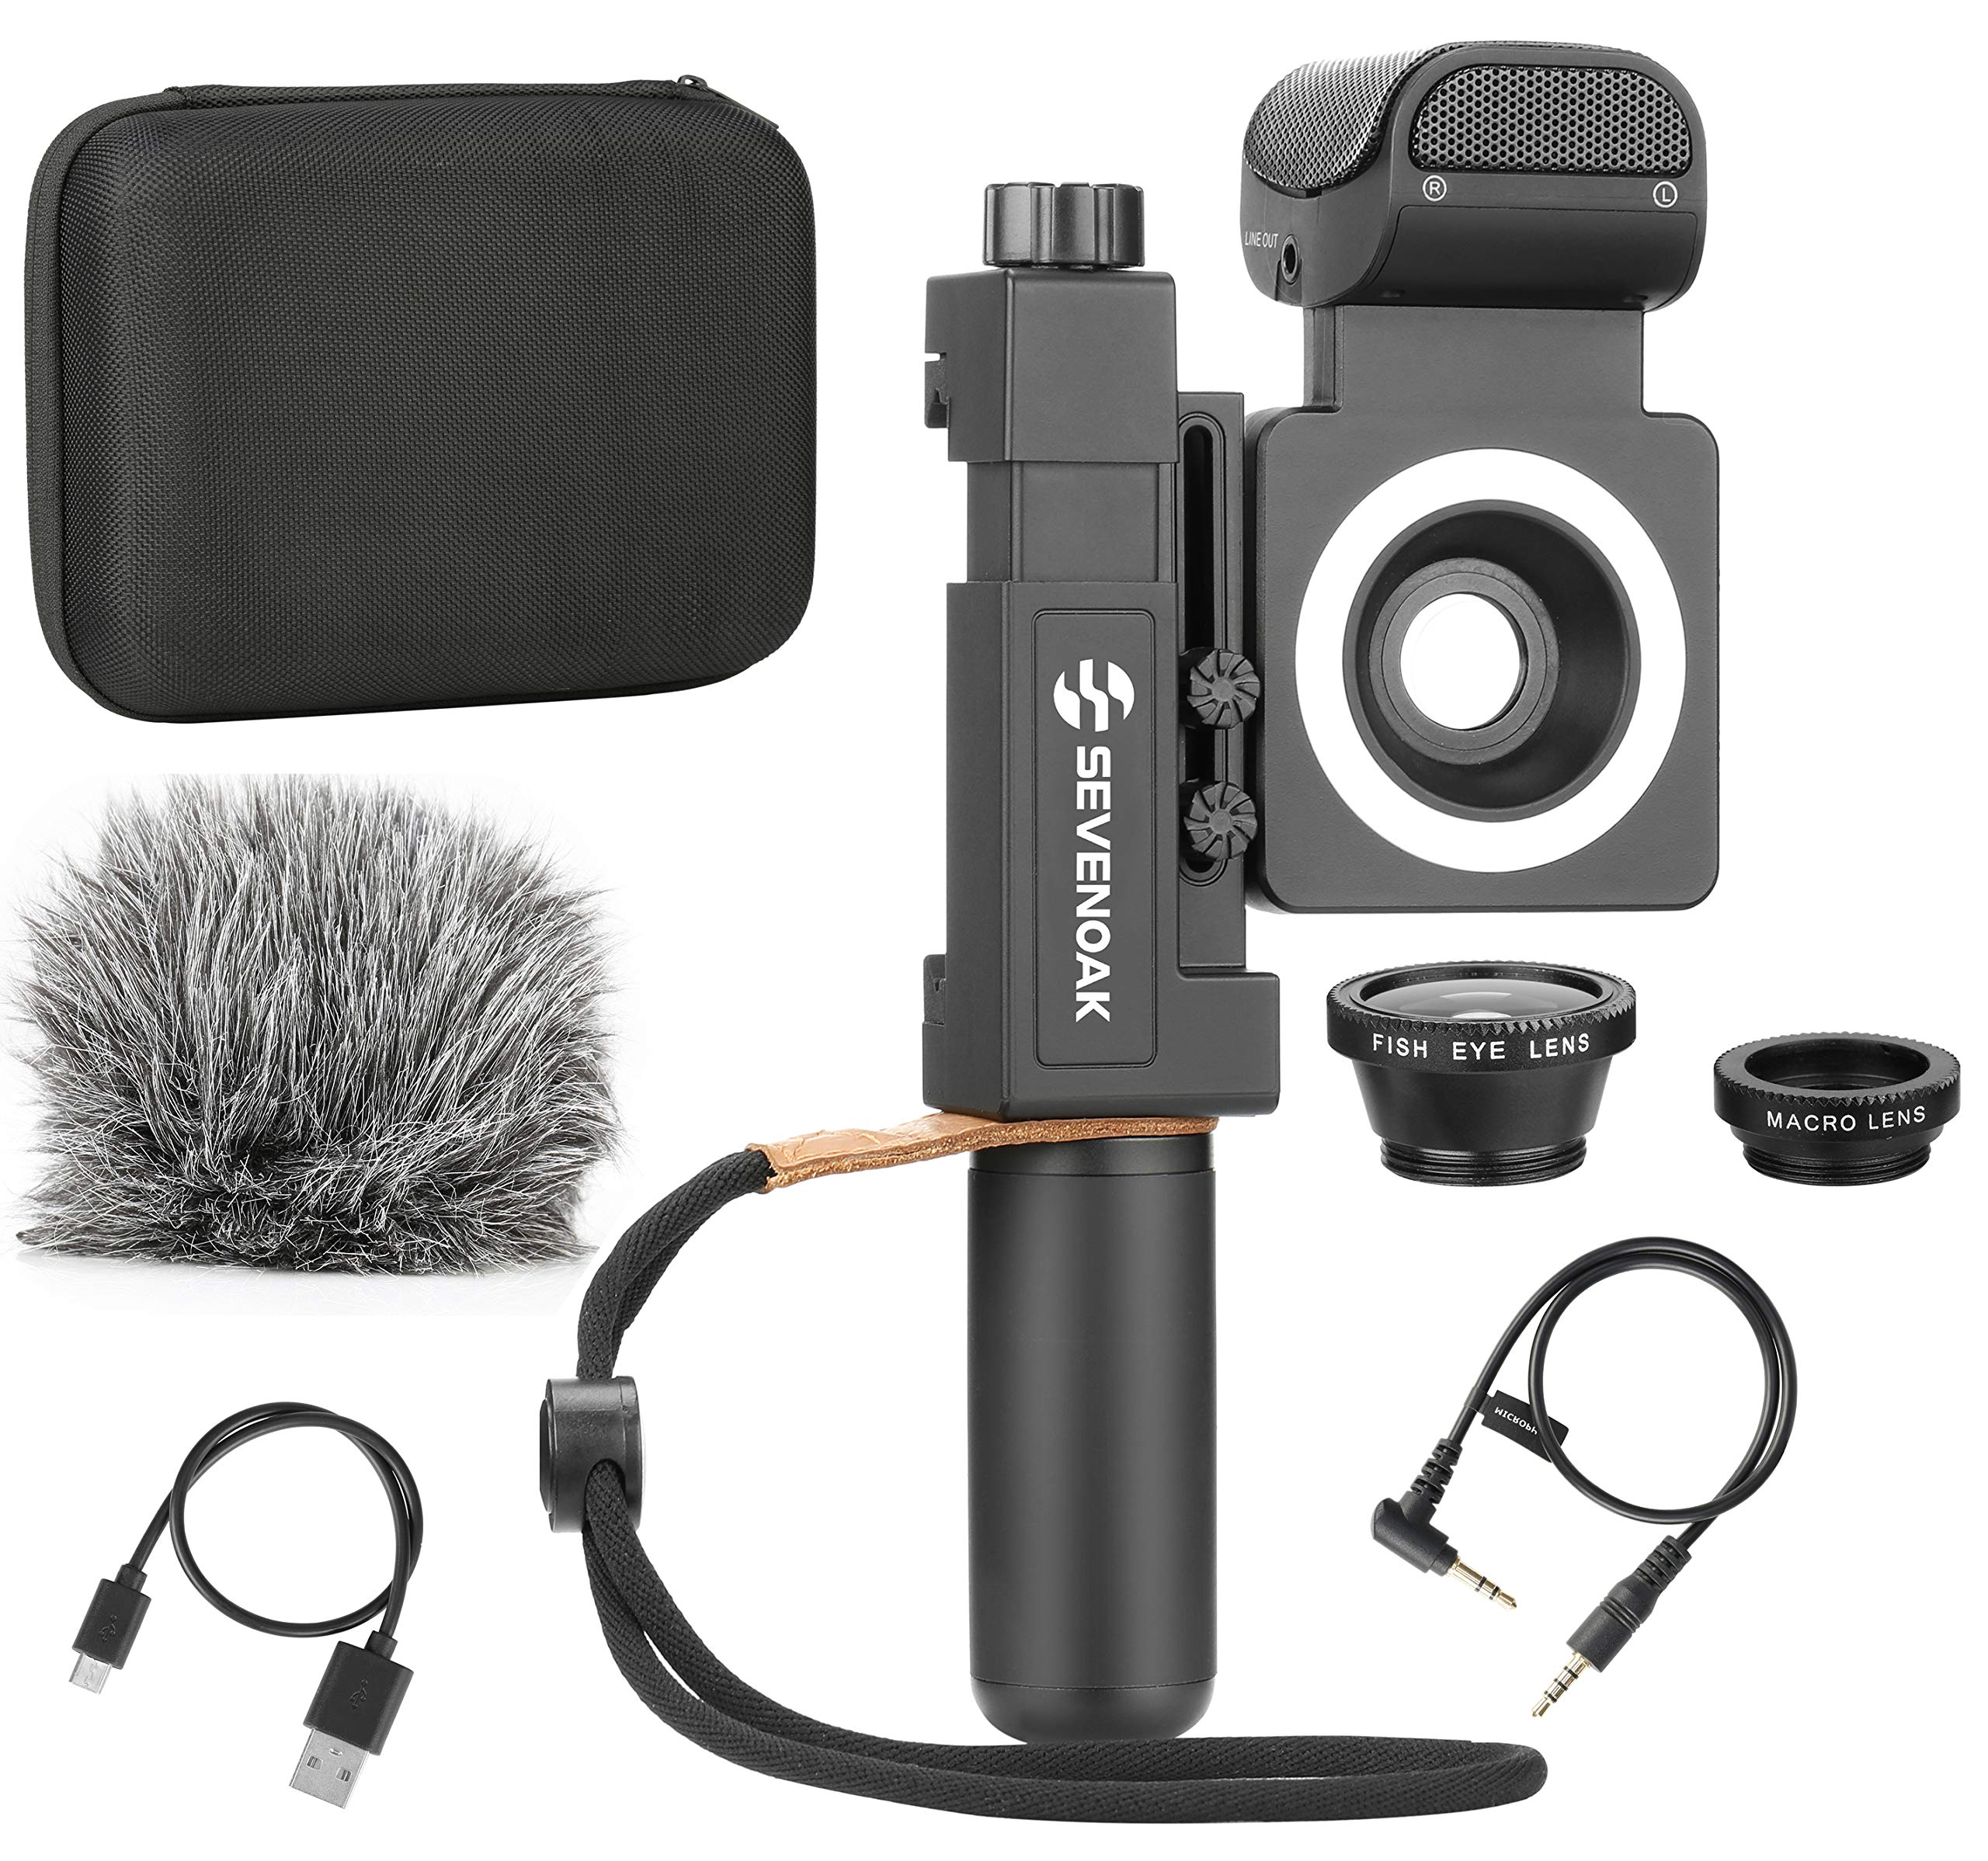 Sevenoak SmartCine by Movo - Complete Universal Smartphone Video Kit with Phone Rig, Built-in Stereo Microphone and LED Light, Wide-Angle and Fisheye Lenses - Compatible with iPhone and Android Smartp